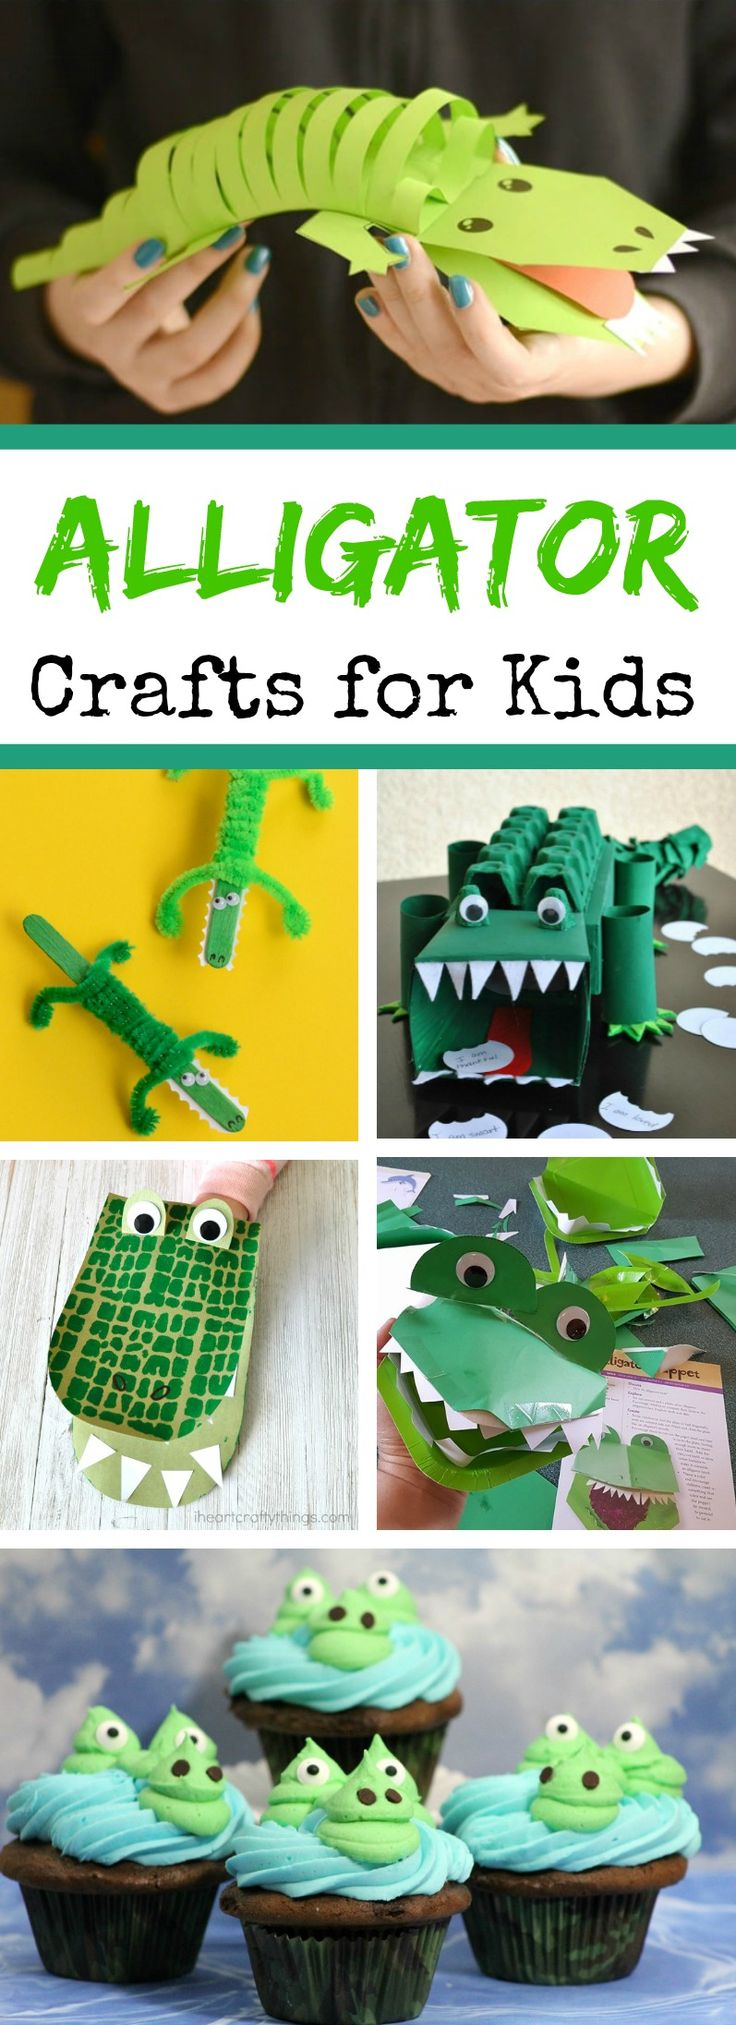 Alligator Crafts for Kids - 8 exciting, yet fun &…